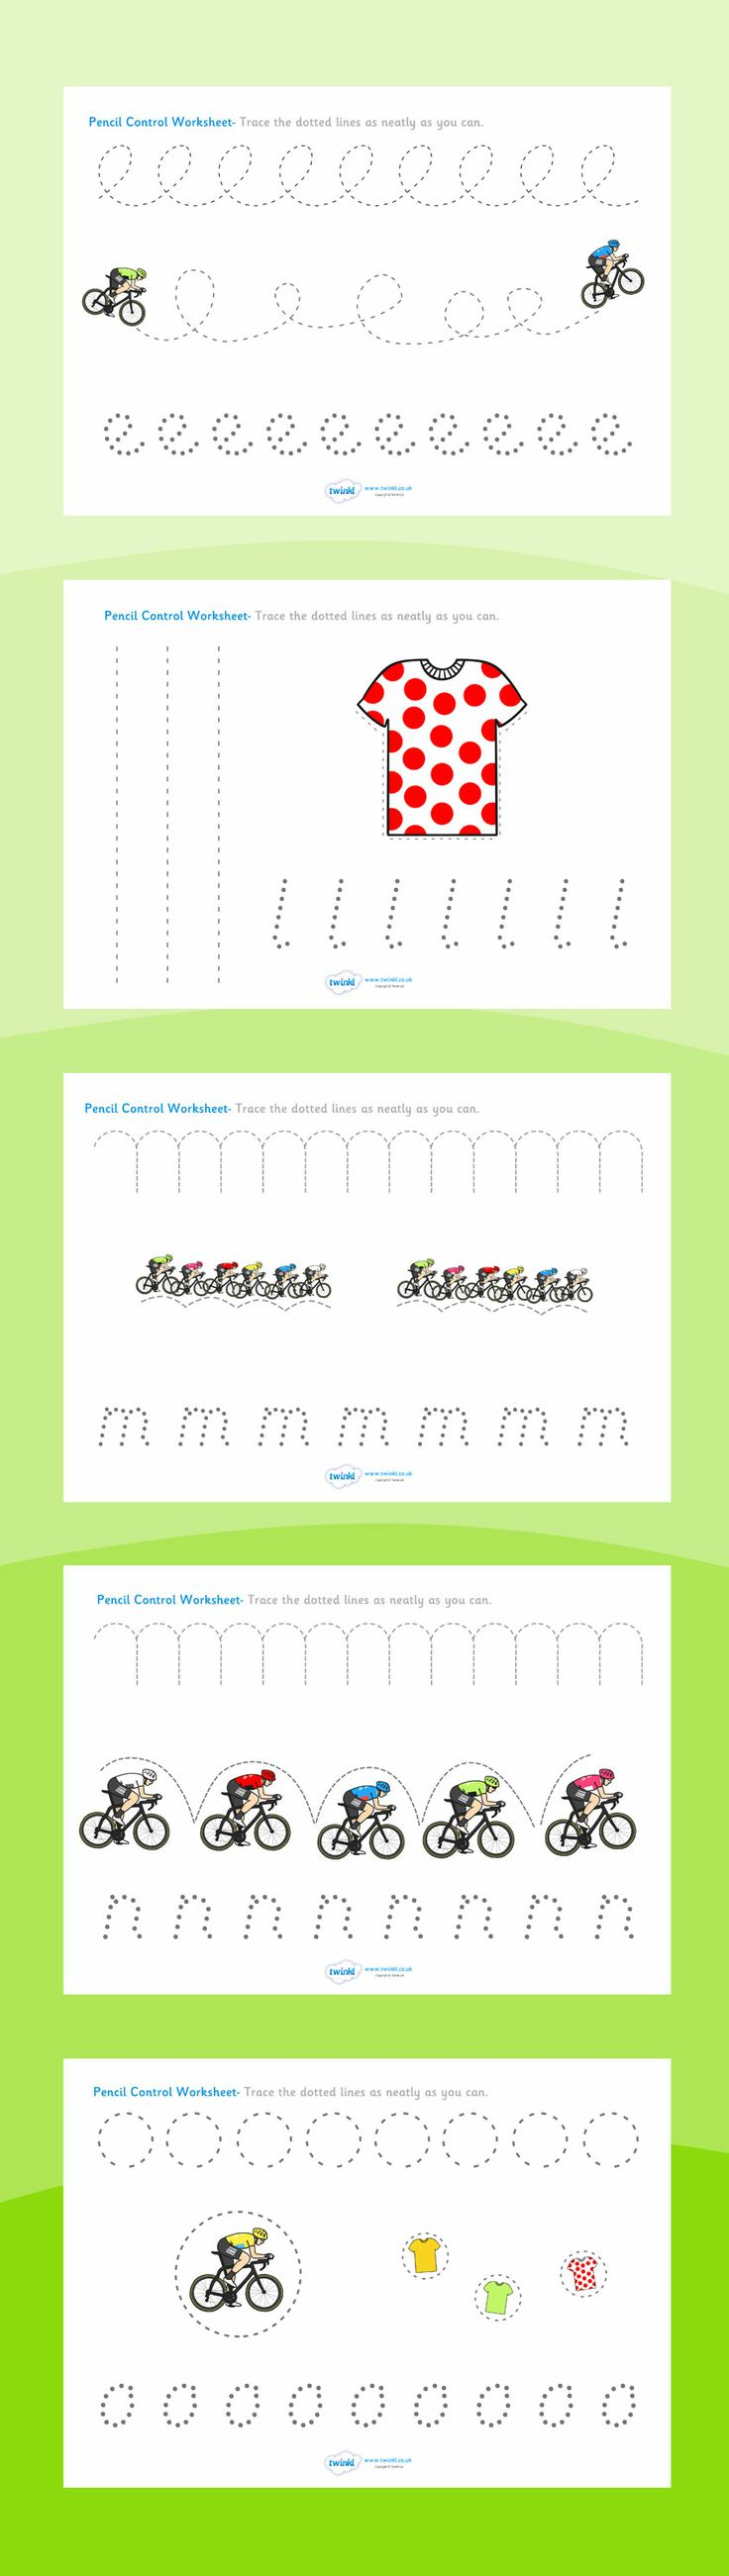 Tour de France- Pencil Control Worksheets